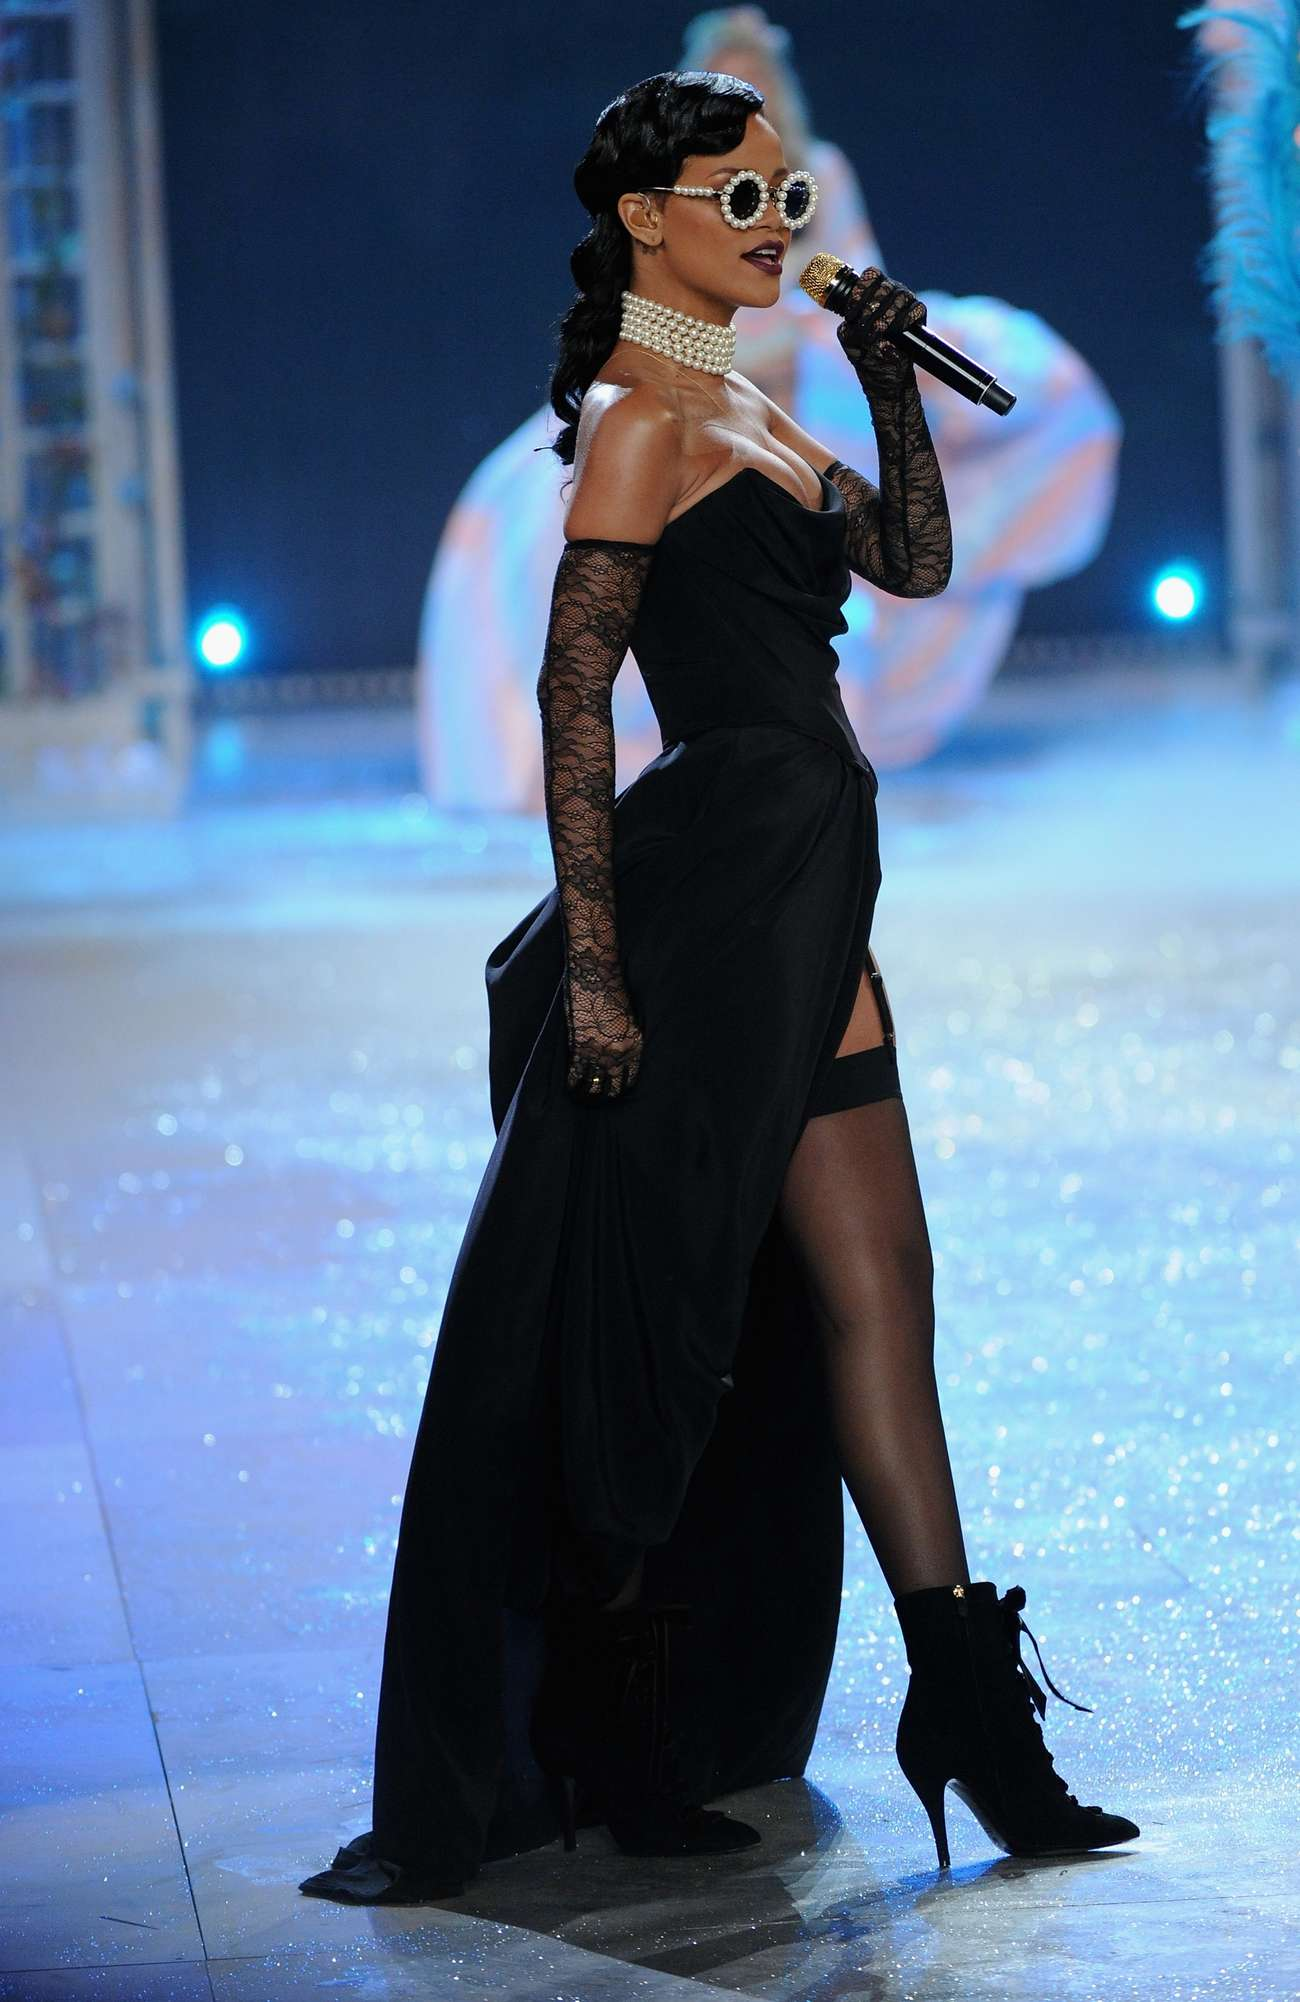 Rihanna Rocks Catwalk At Victoria S Secret Fashion Show 2012 Photos Scopecube